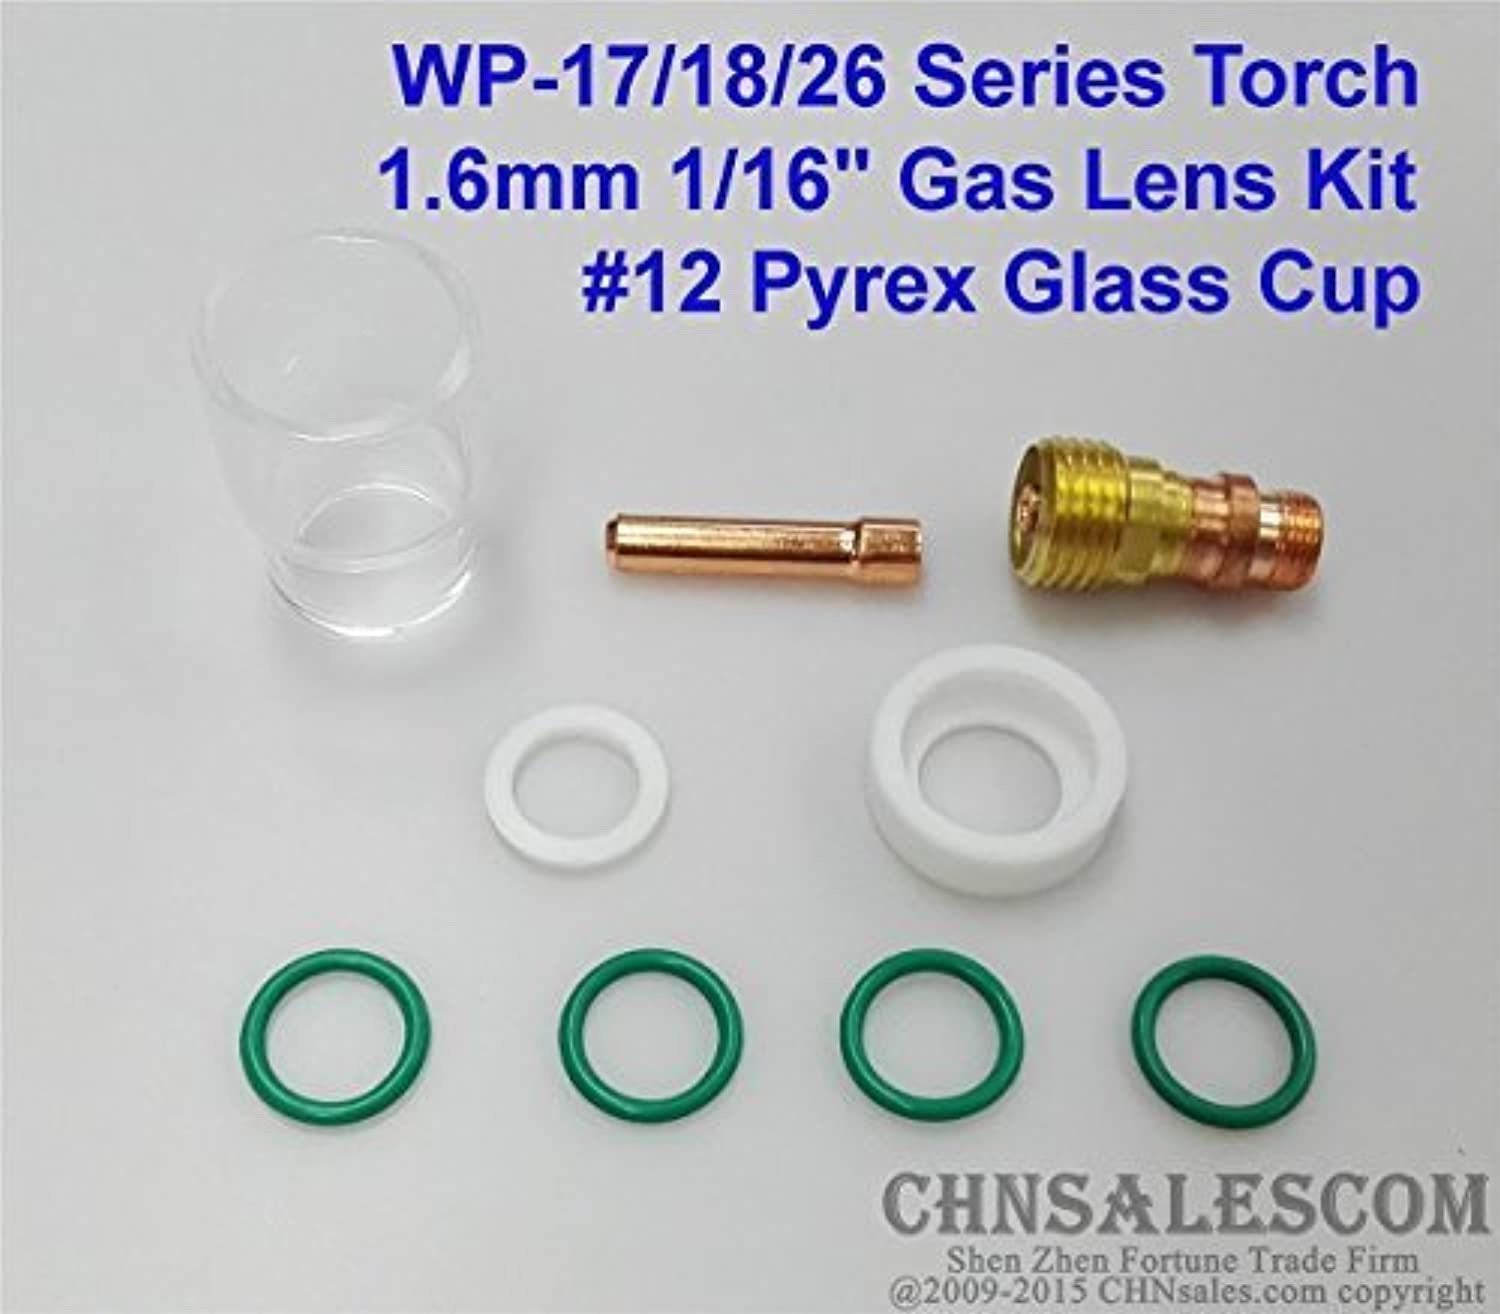 6 PCS #12 Glass Pyrex Cup TIG Welding Torch Gas Lens For WP-9 /& WP-17 Tools